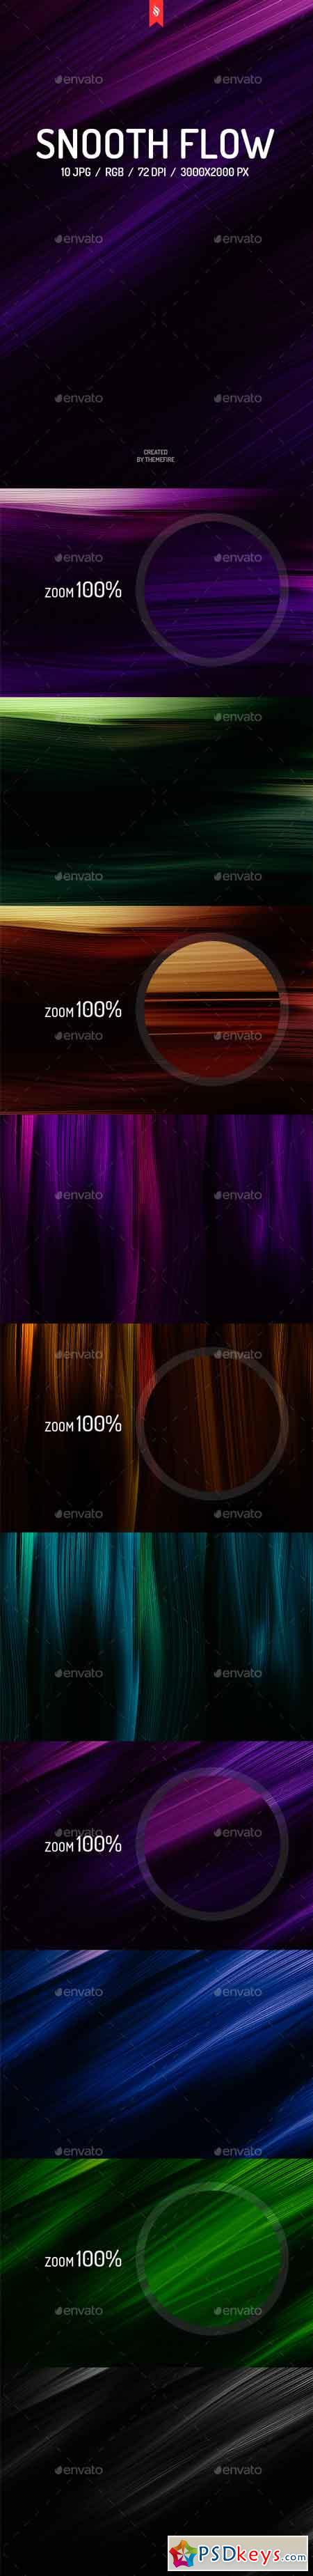 Smooth Flow Backgrounds 13950436